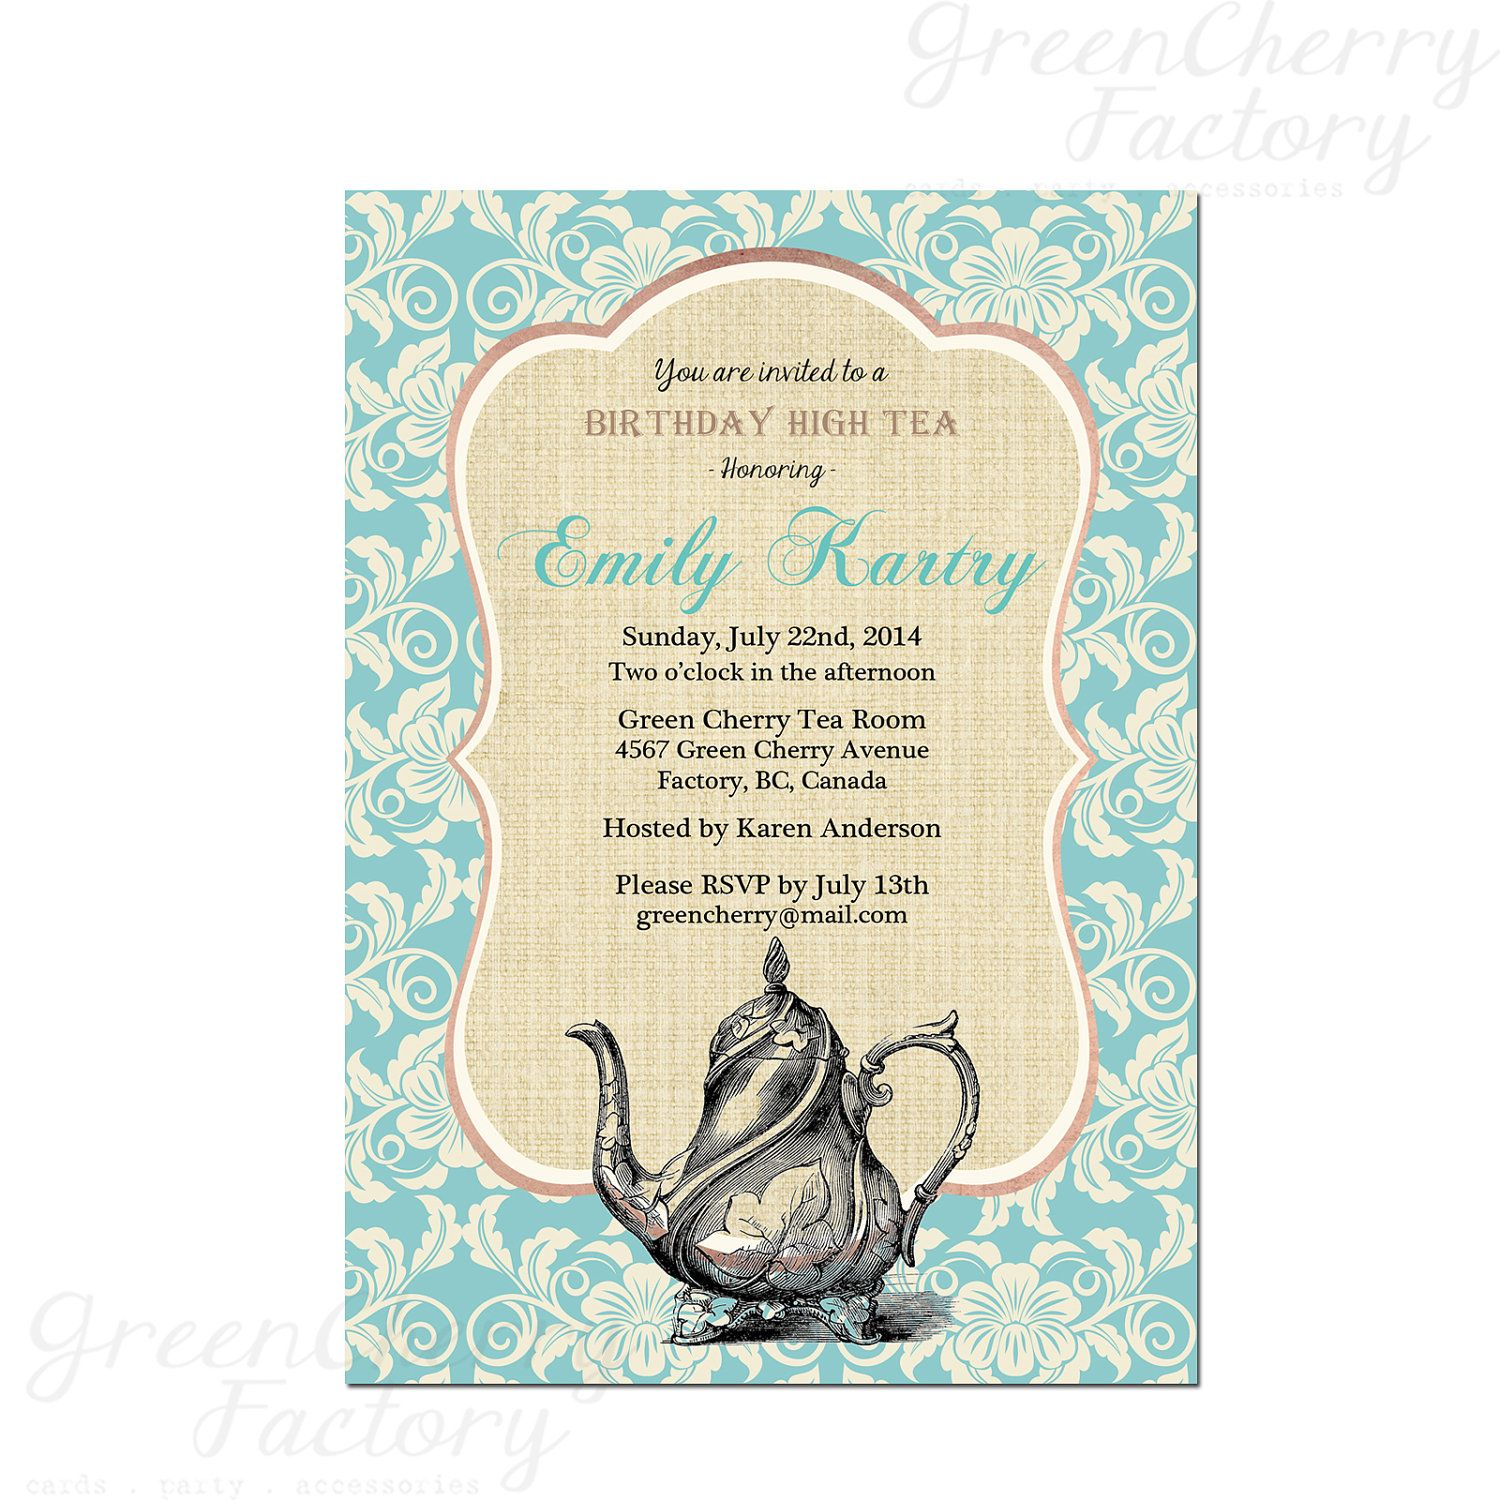 Teal Floral Tea Party Invitation - Bridal Tea Party - Birthday High ...